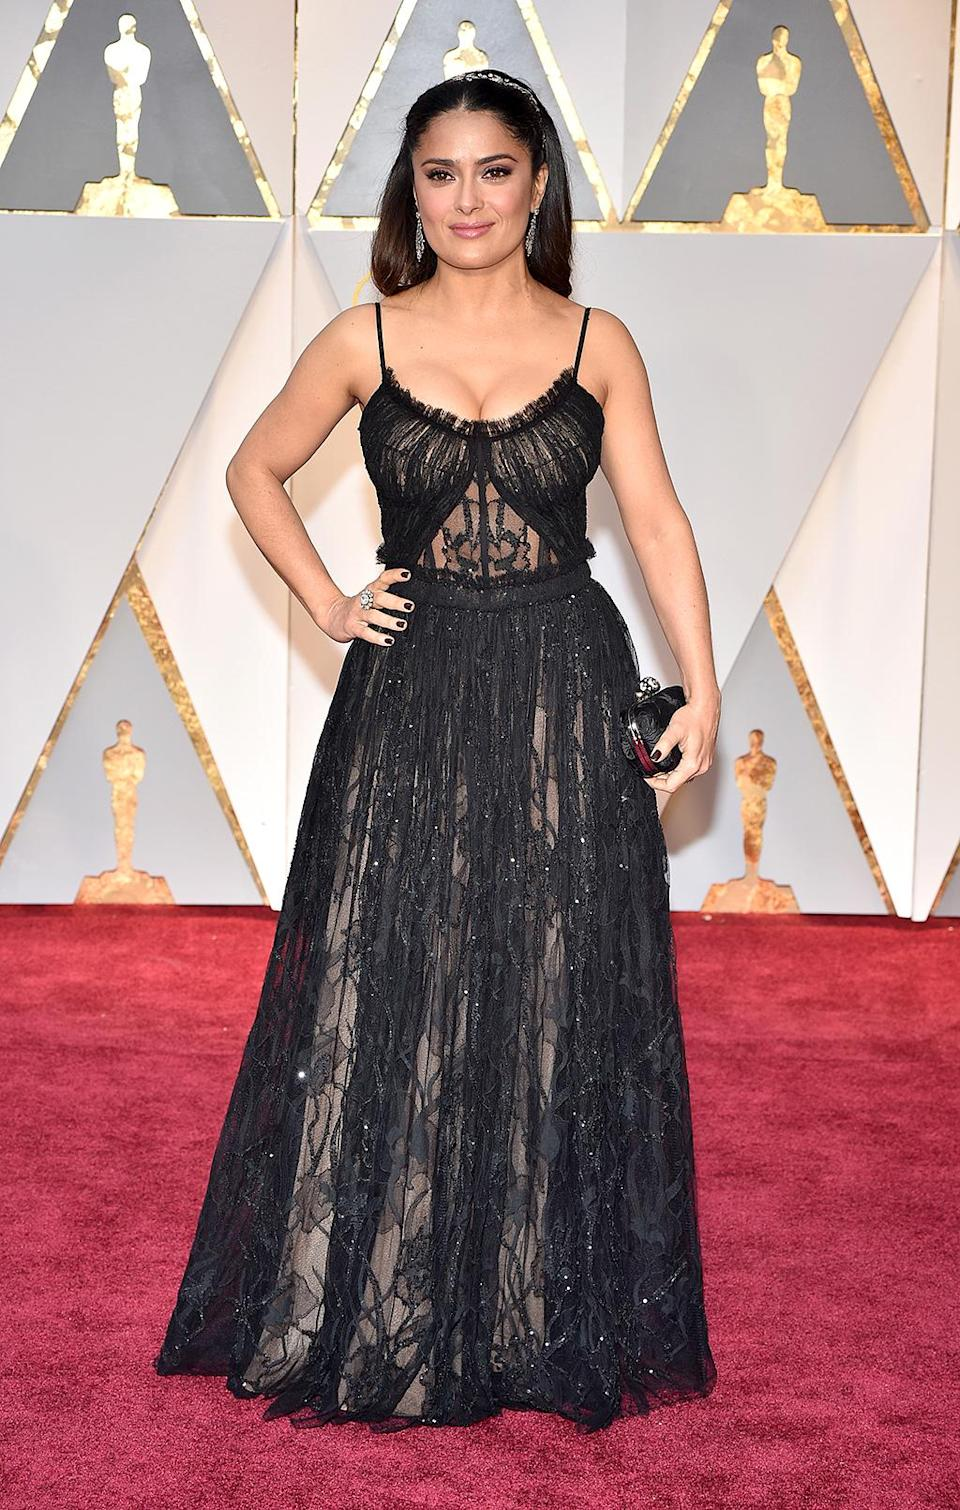 <p>Salma Hayek attends the 89th Annual Academy Awards at Hollywood & Highland Center on Feb. 26, 2017. (Photo by Kevin Mazur/Getty Images) </p>